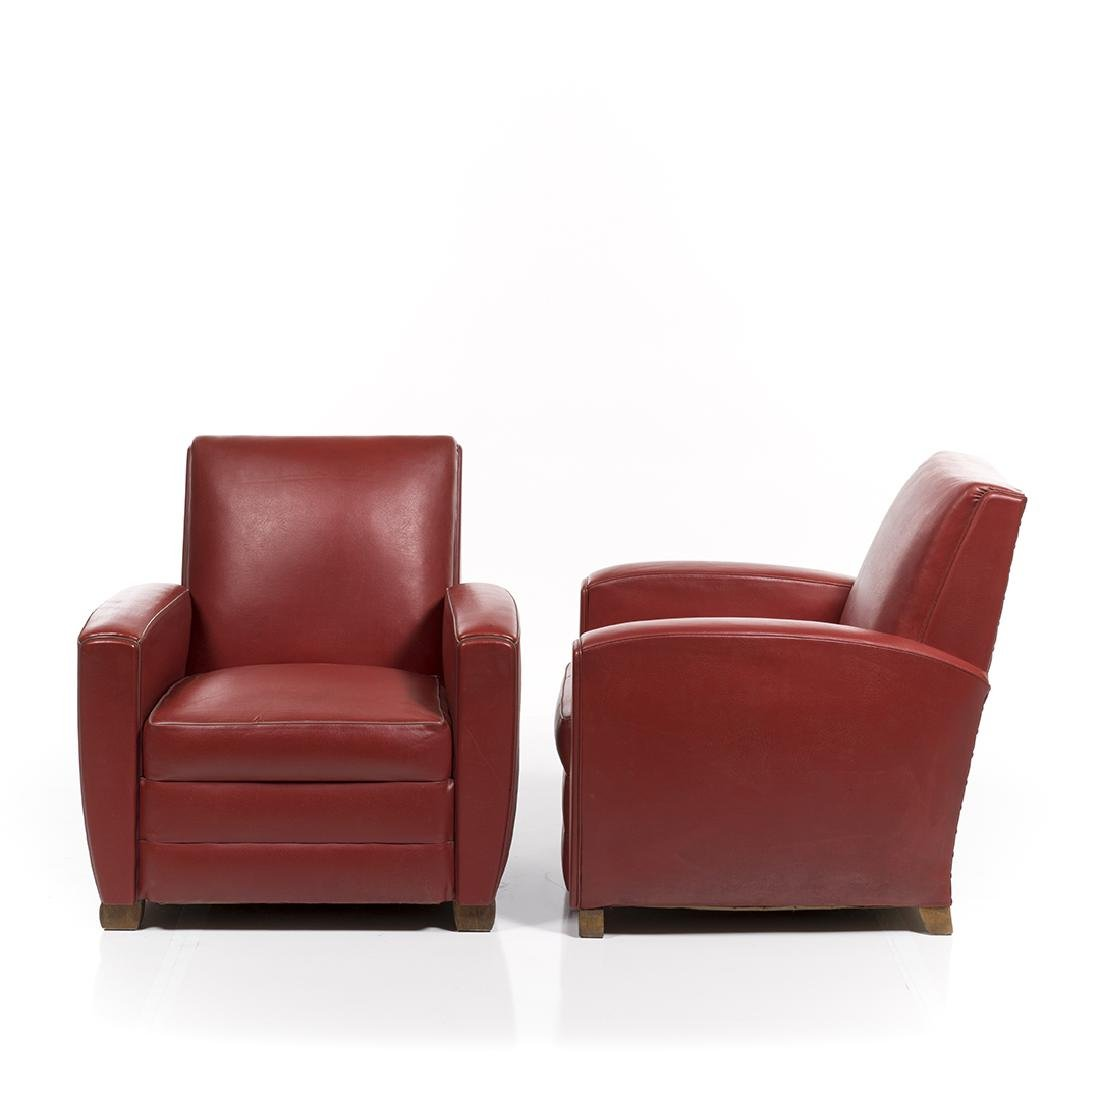 French Club Chairs - 2